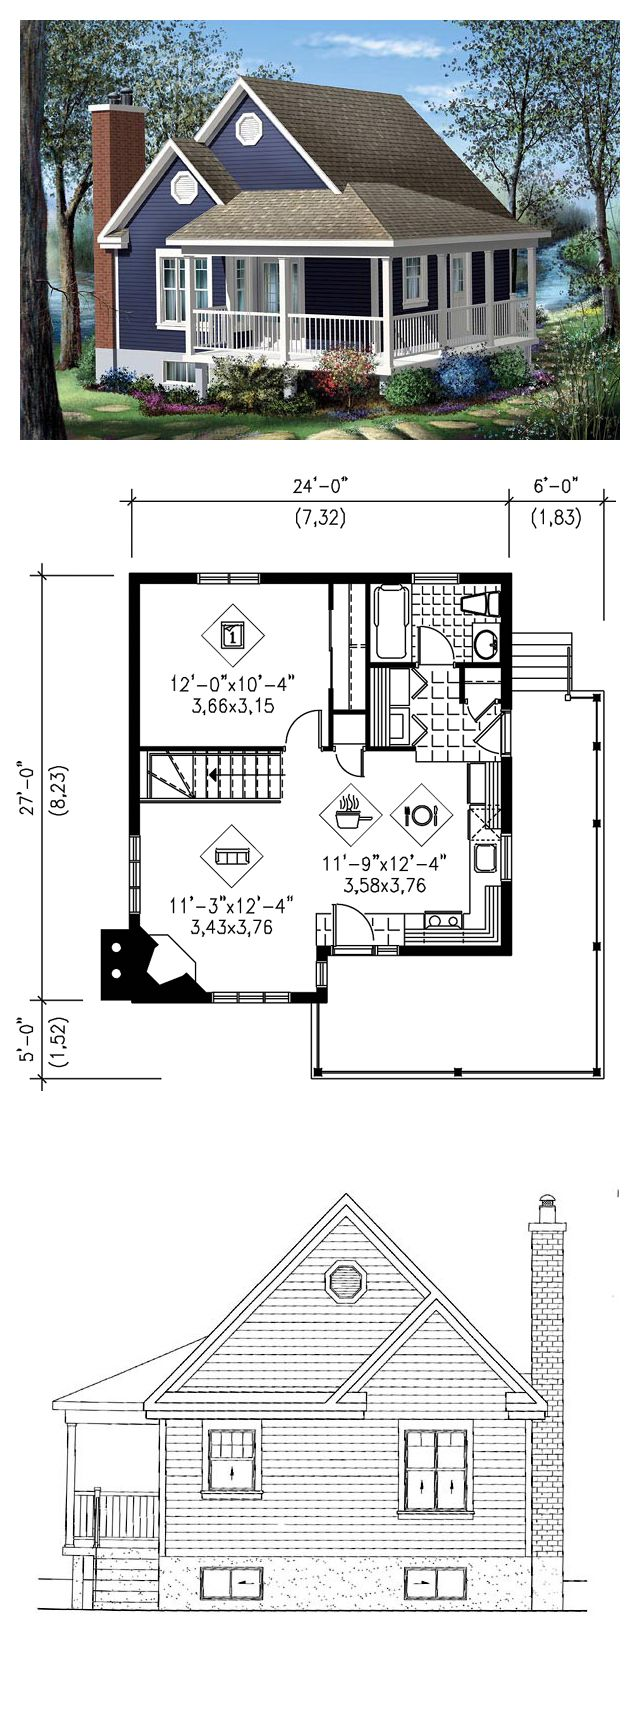 Drawn bedroom dining area 25+ House house Pinterest Plan